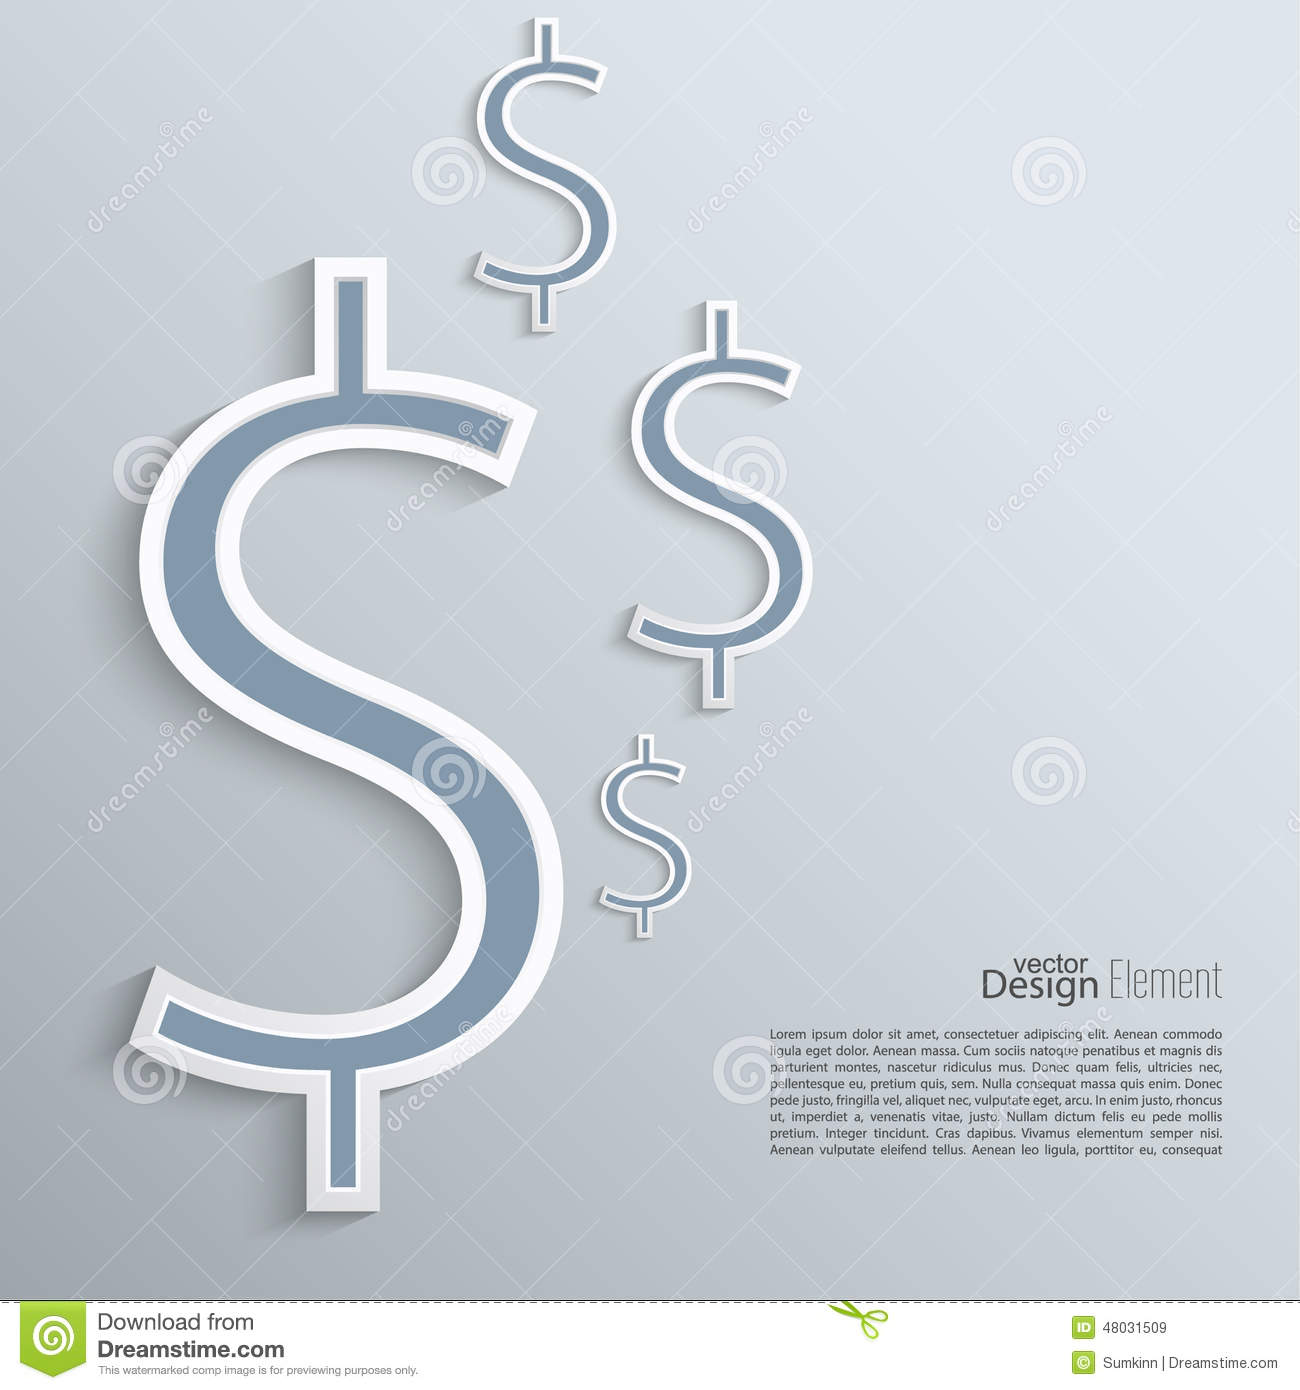 Abstract Background With A Dollar Sign. Stock Vector - Illustration ...